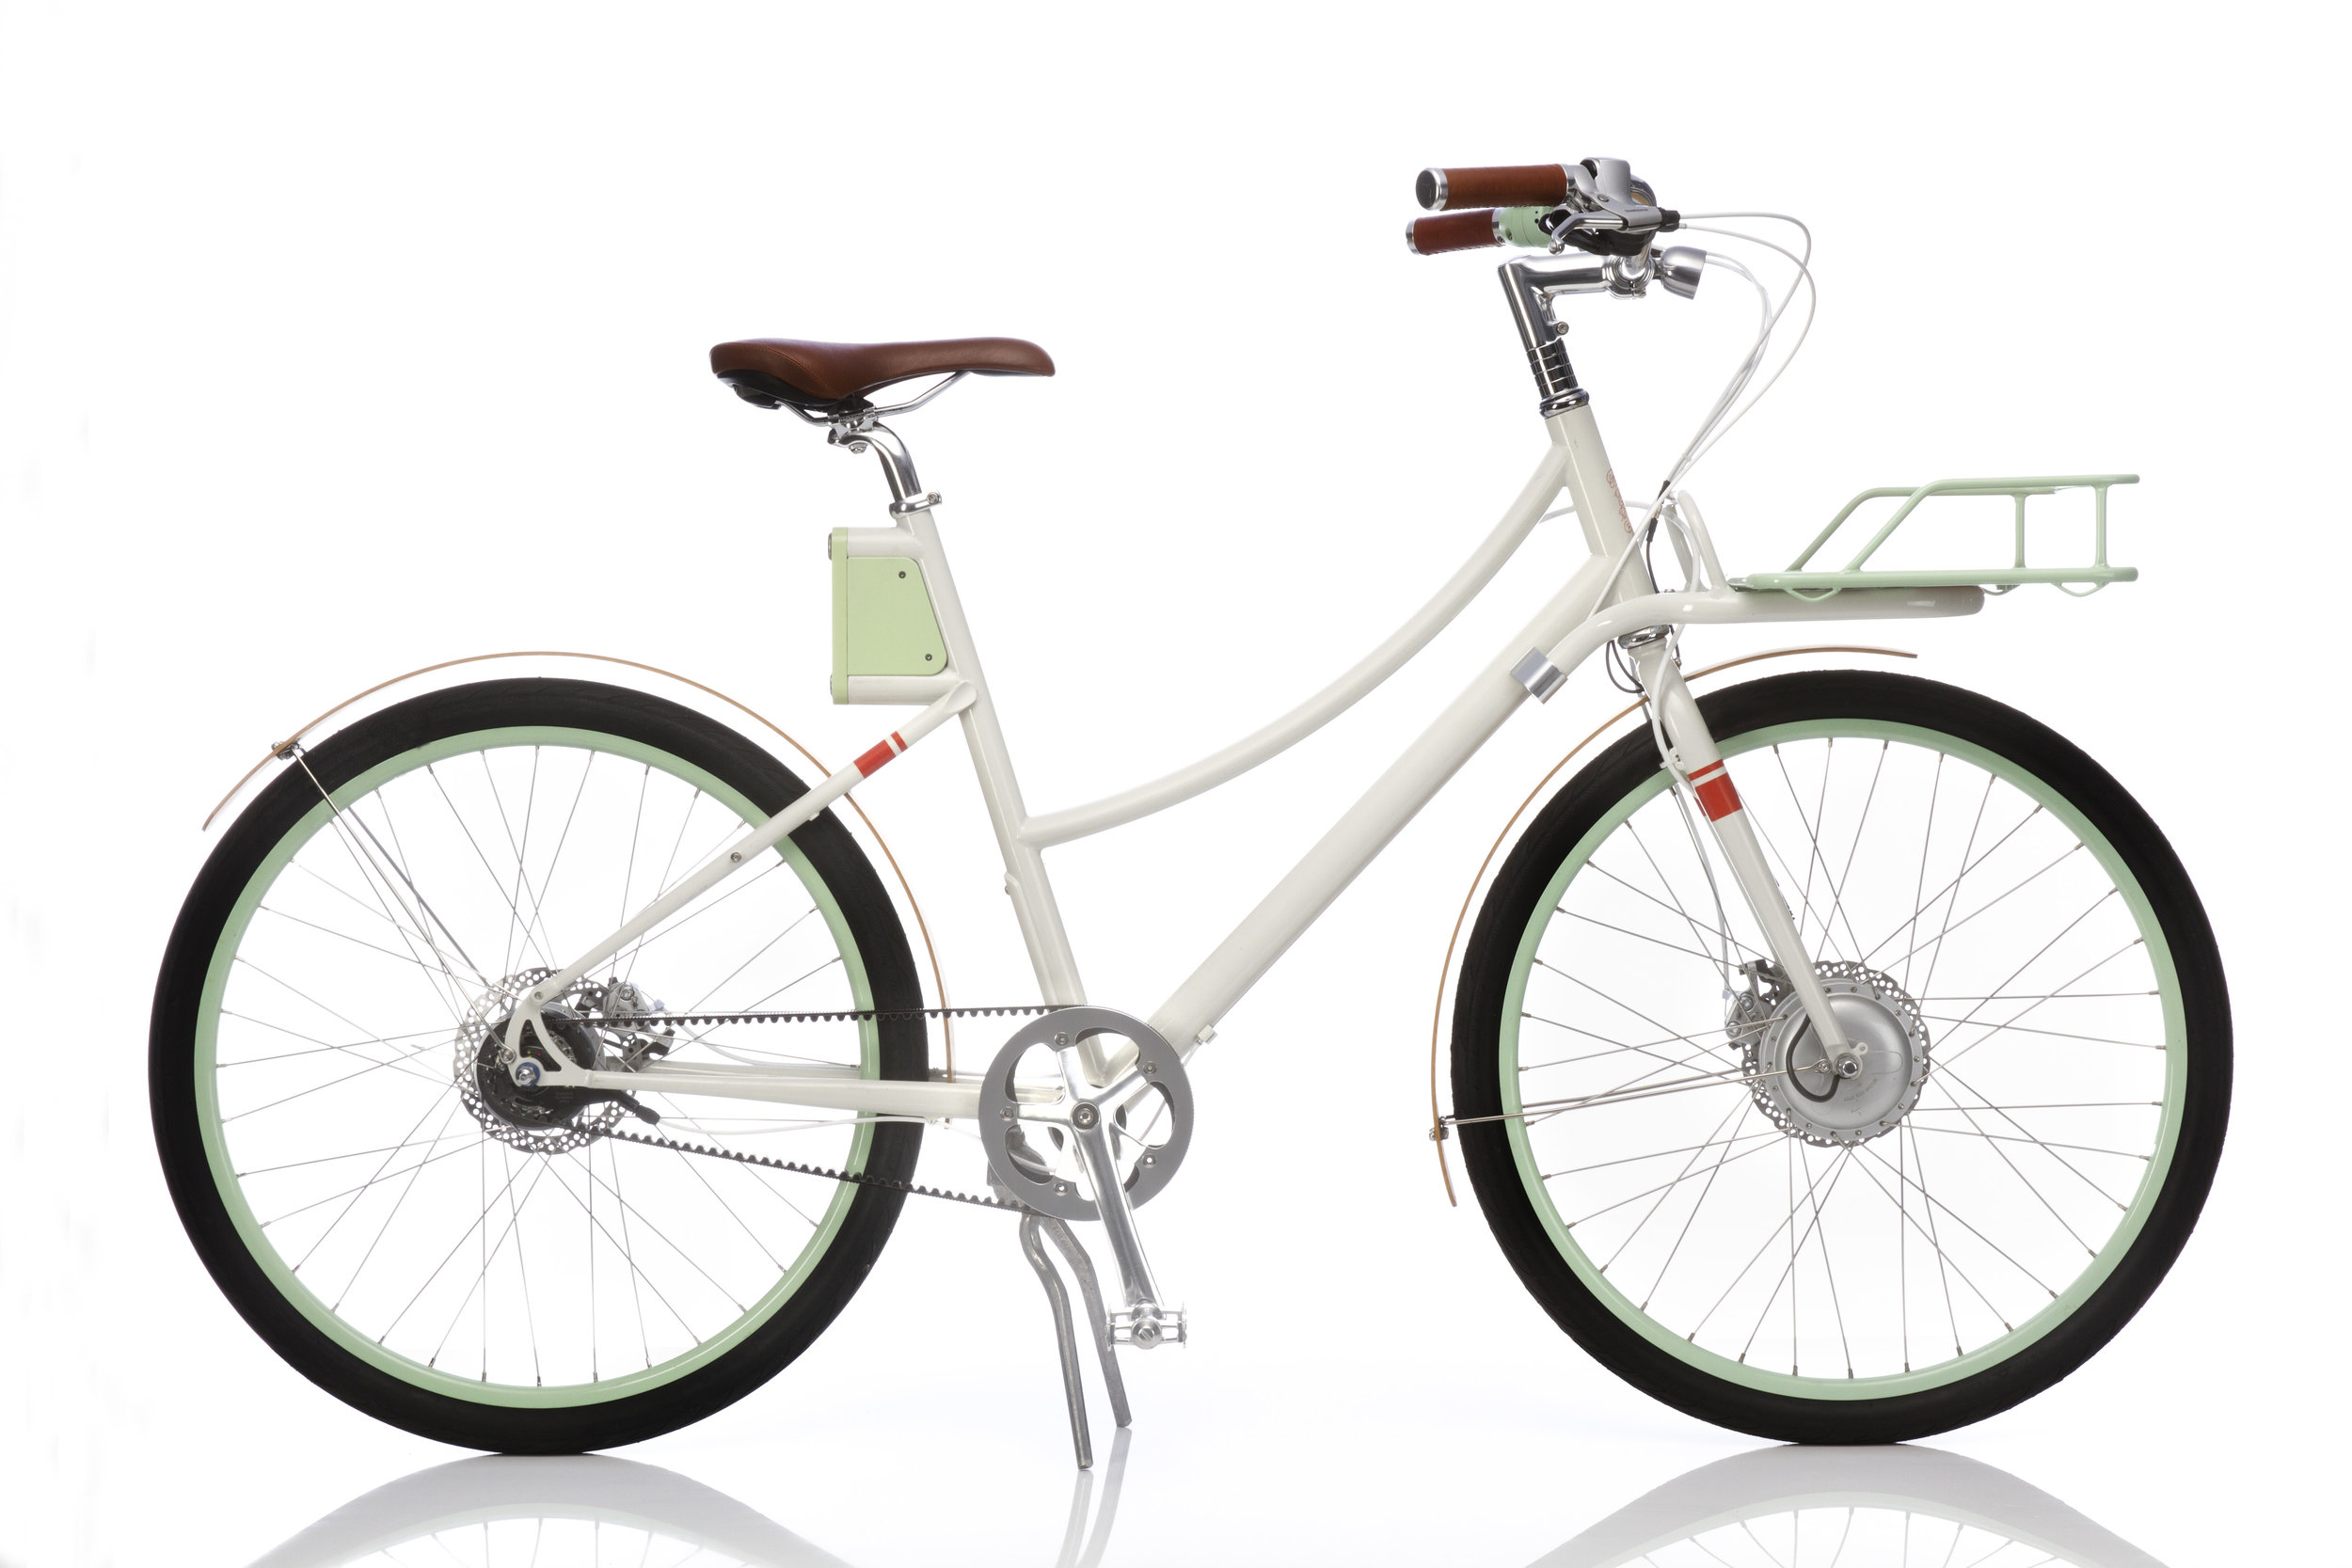 Faraday Bicycles - Bicycling made irresistible. Faraday is the ultimate electric-propelled, utility vehicle. Designed in an IDEO lab, faraday emerged into the market as a sleek, lightweight bicycle, great for conquering SF hills and replacing a car during a commute.